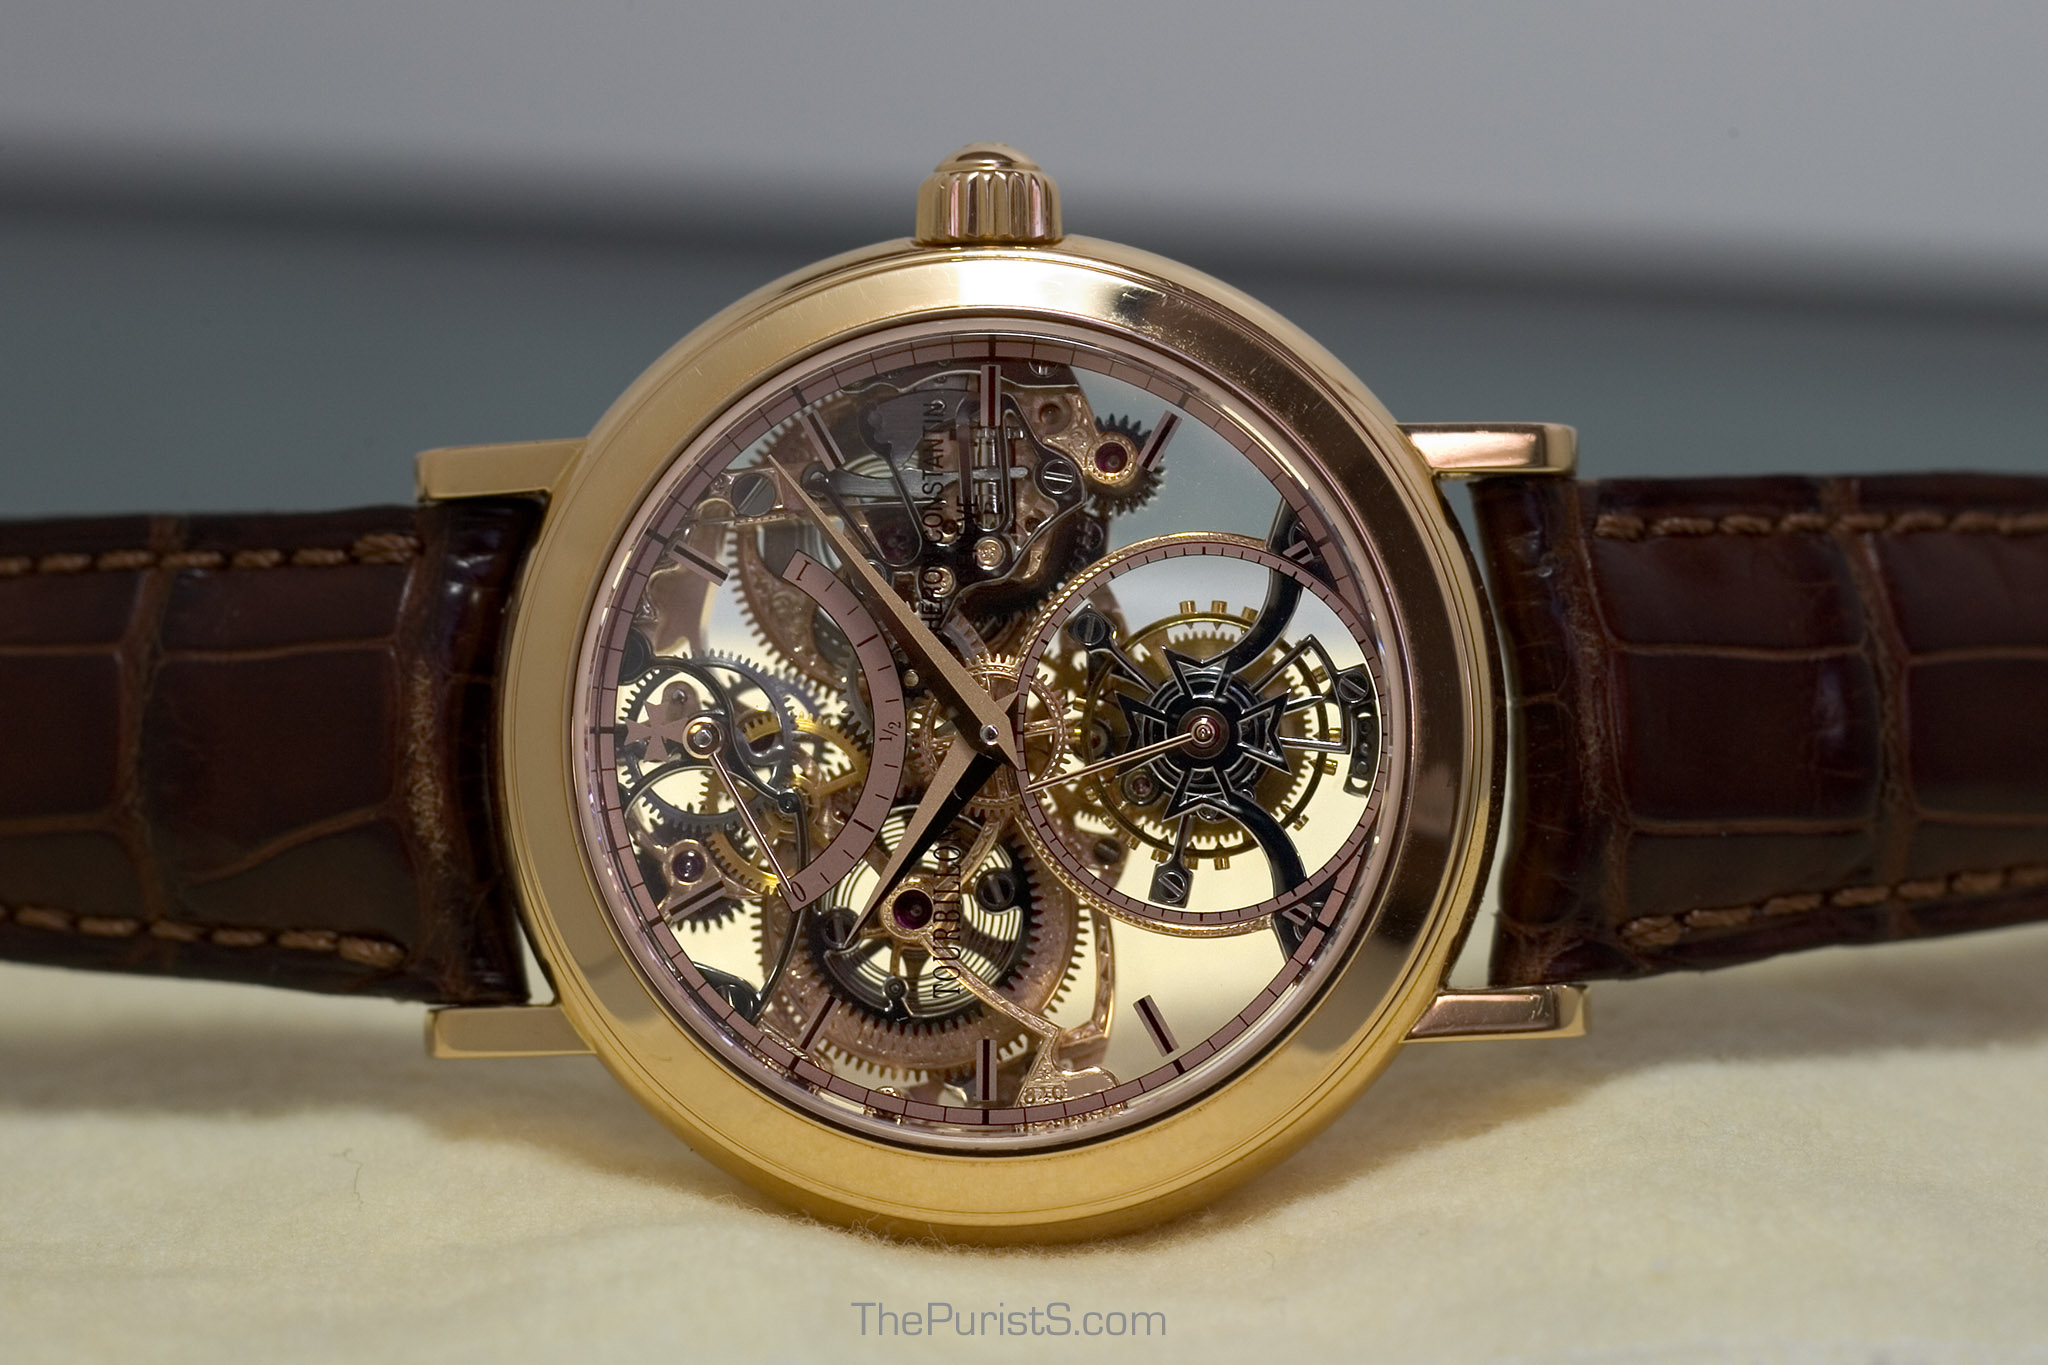 PASSION FOR WATCHES